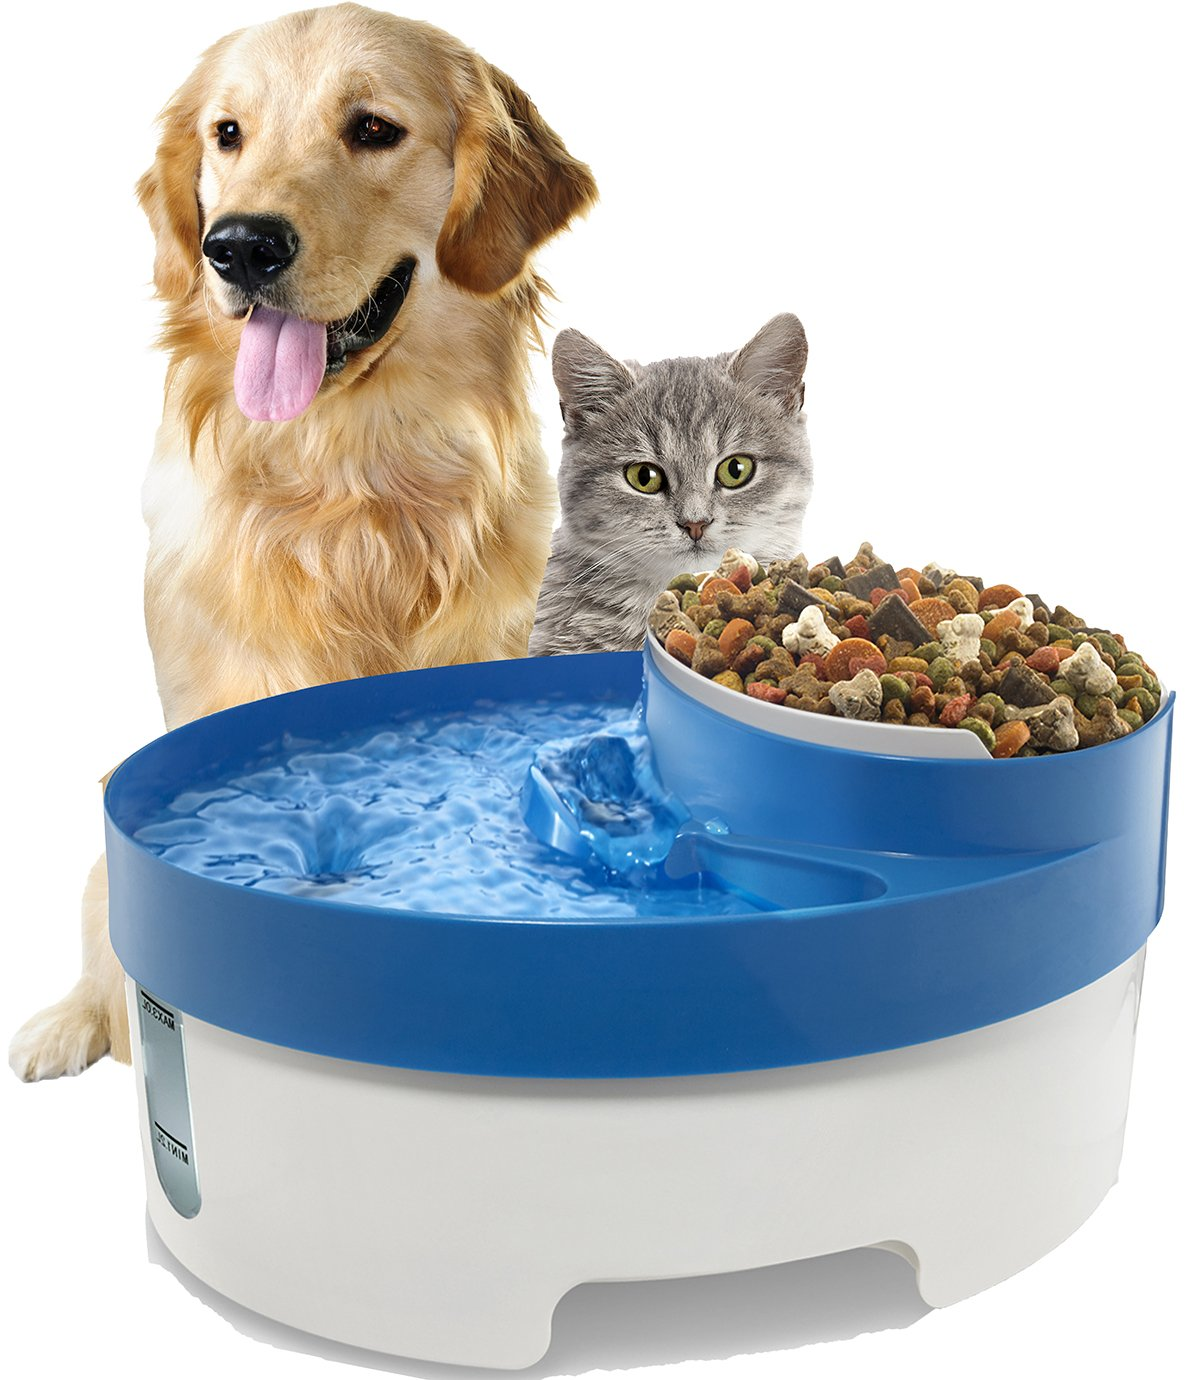 Paws & Pals Pet Fountain Water & Food Bowl Feeder for Dog Cats with Water Filter